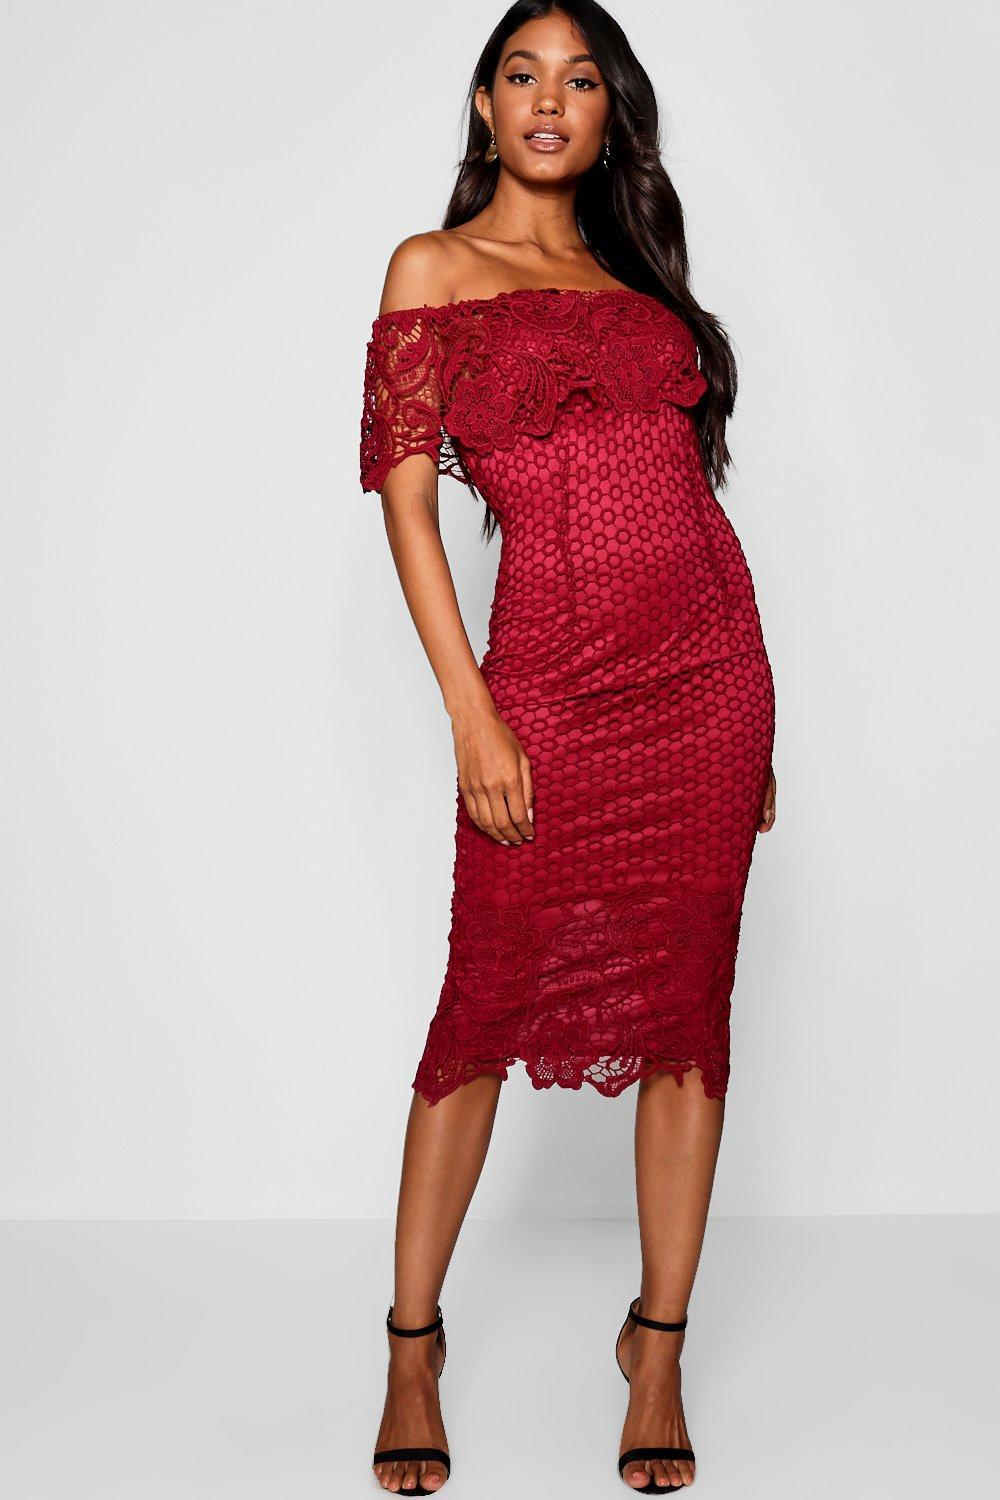 569791081e4 Boohoo Boutique Lace Off Shoulder Midi Dress in Red - Lyst